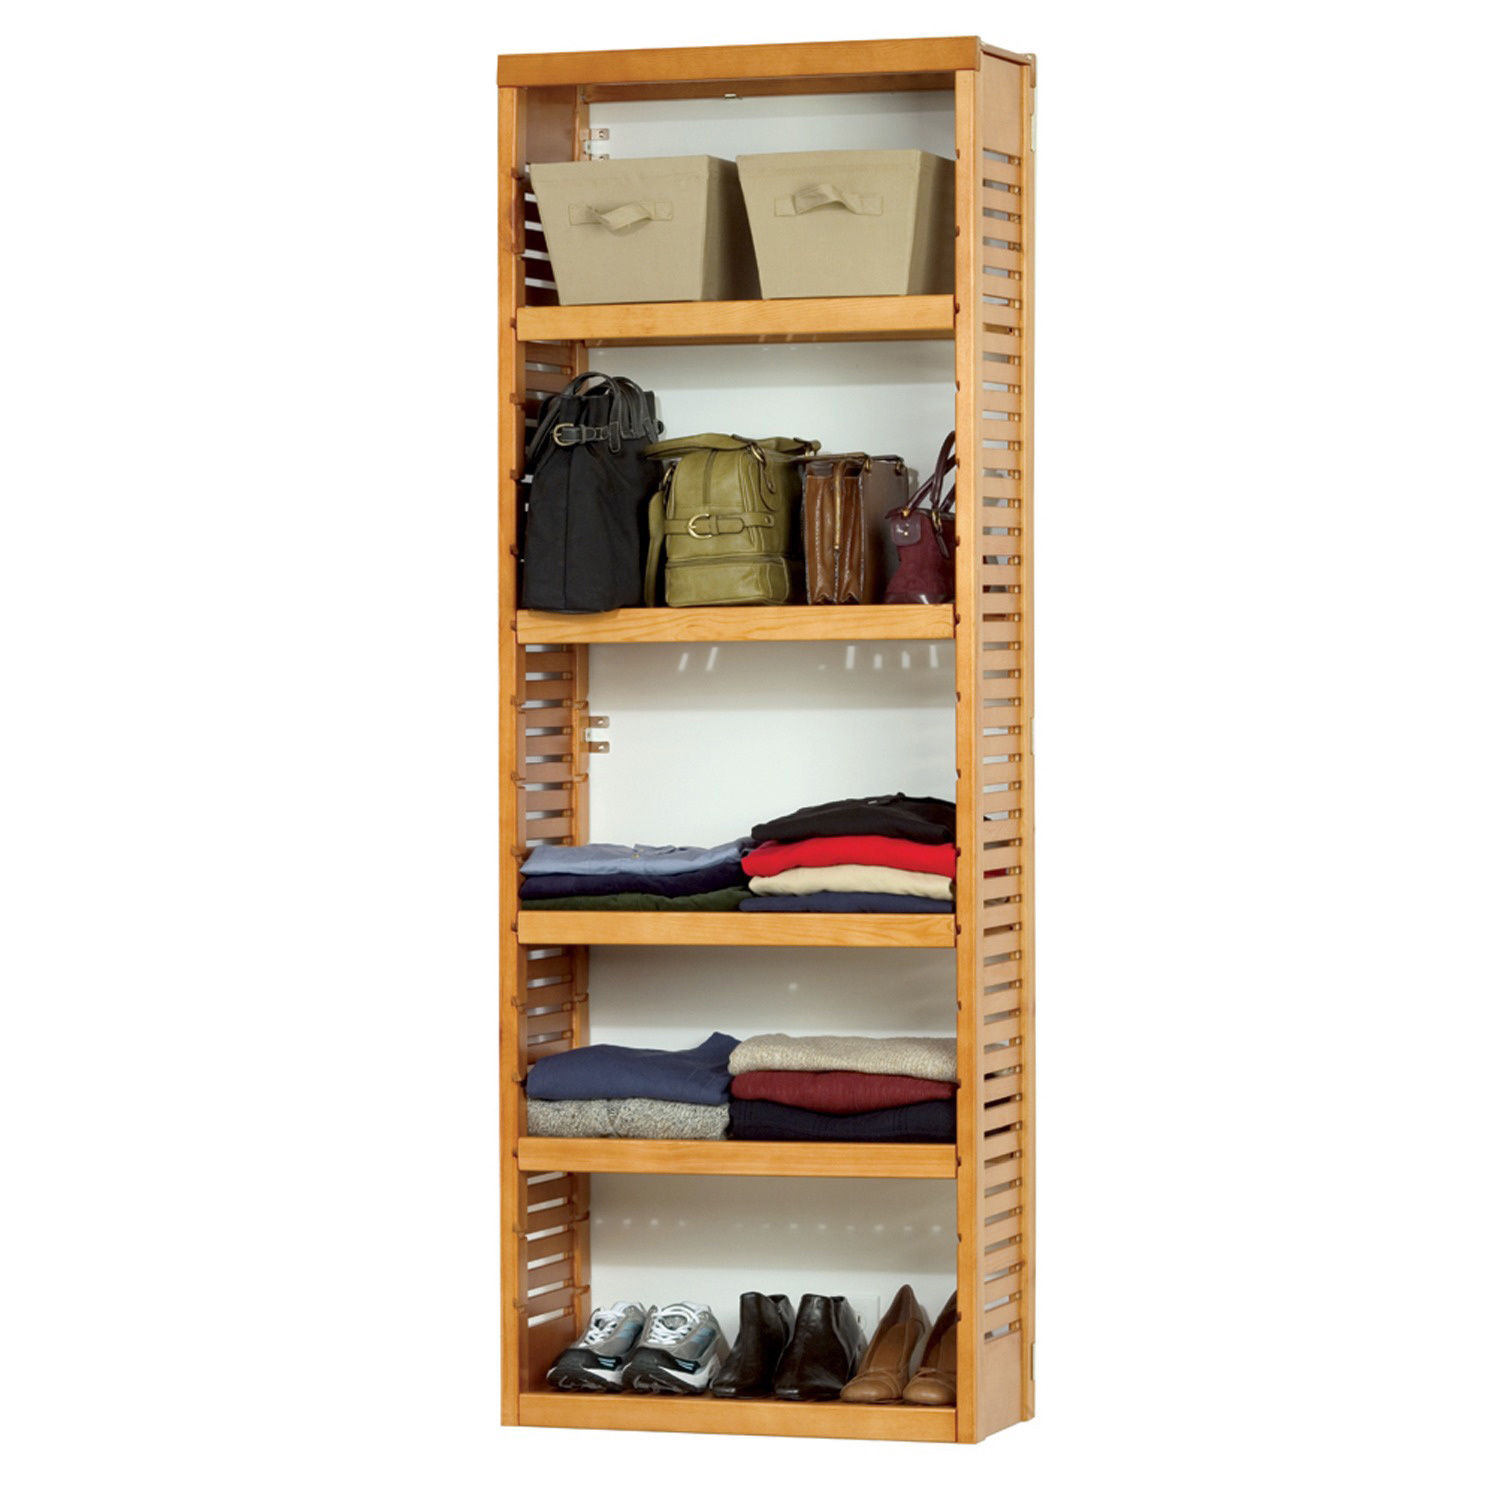 Wonderful image of Wooden Closet Shelving System · Luxurious Wood  Jewelry & Gift  with #B11A23 color and 1500x1500 pixels